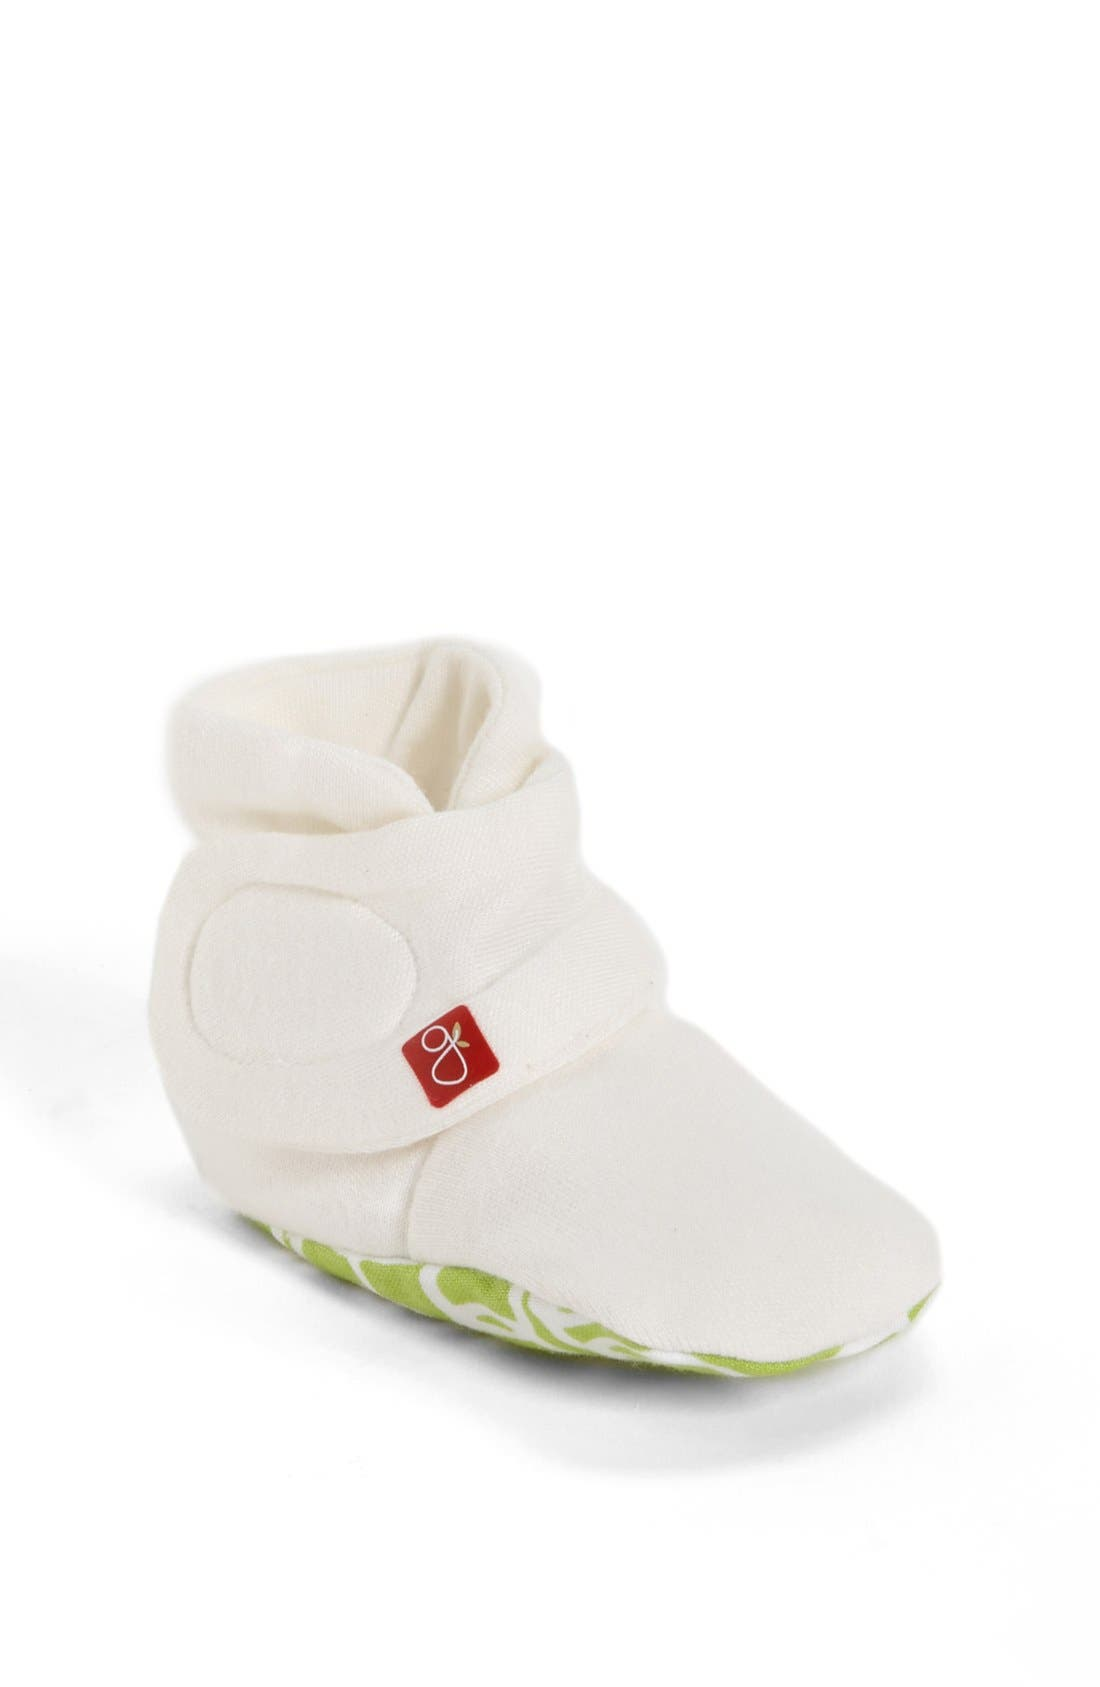 Alternate Image 1 Selected - goumikids 'goumiboots' Bootie (Baby)